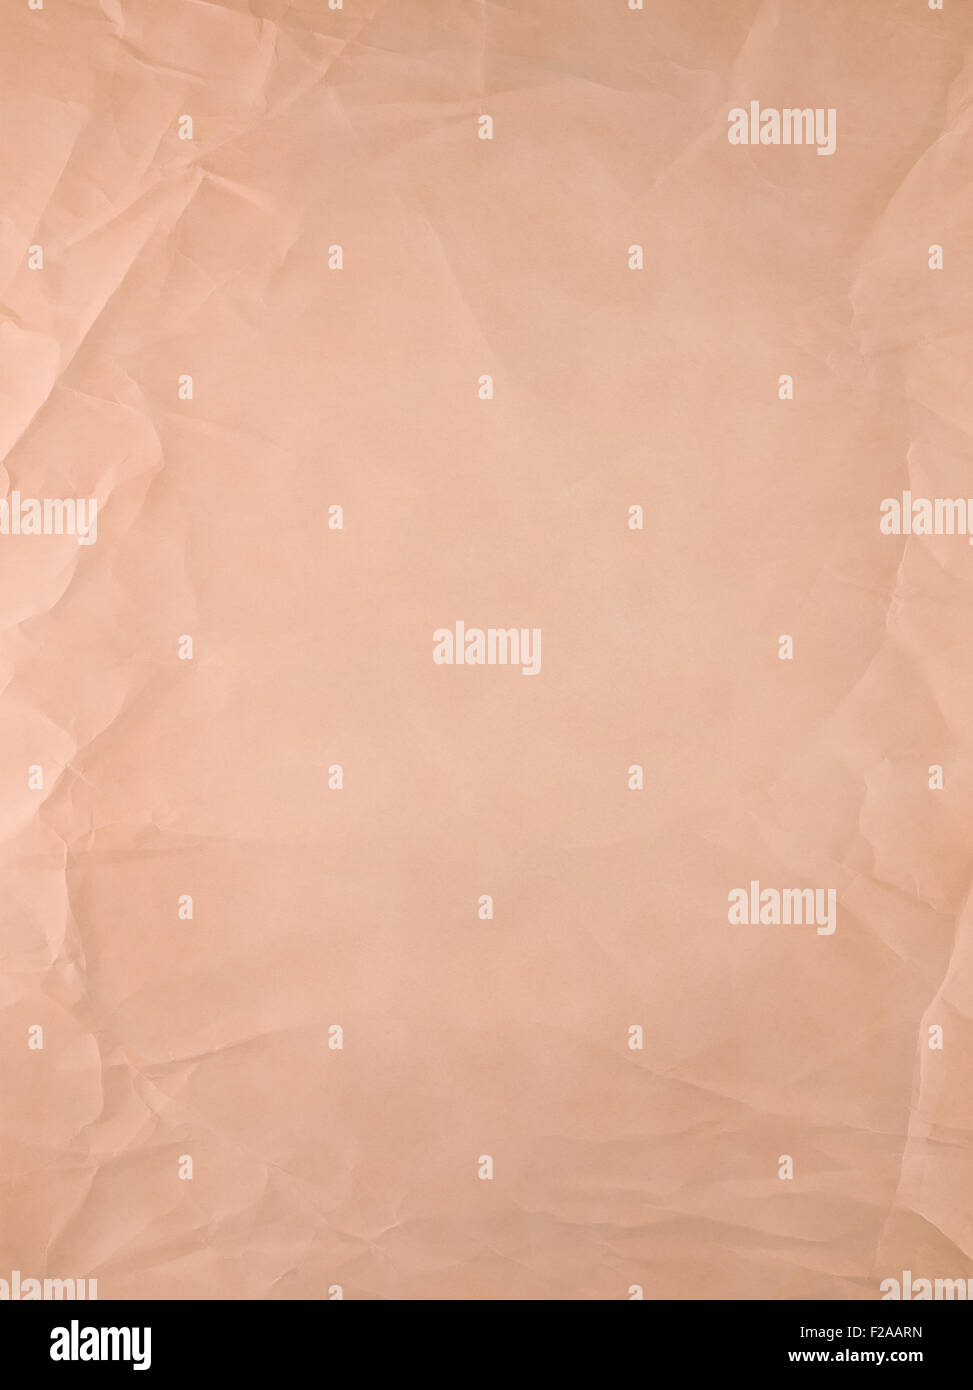 Orange old type paper, creases and wrinkles. - Stock Image